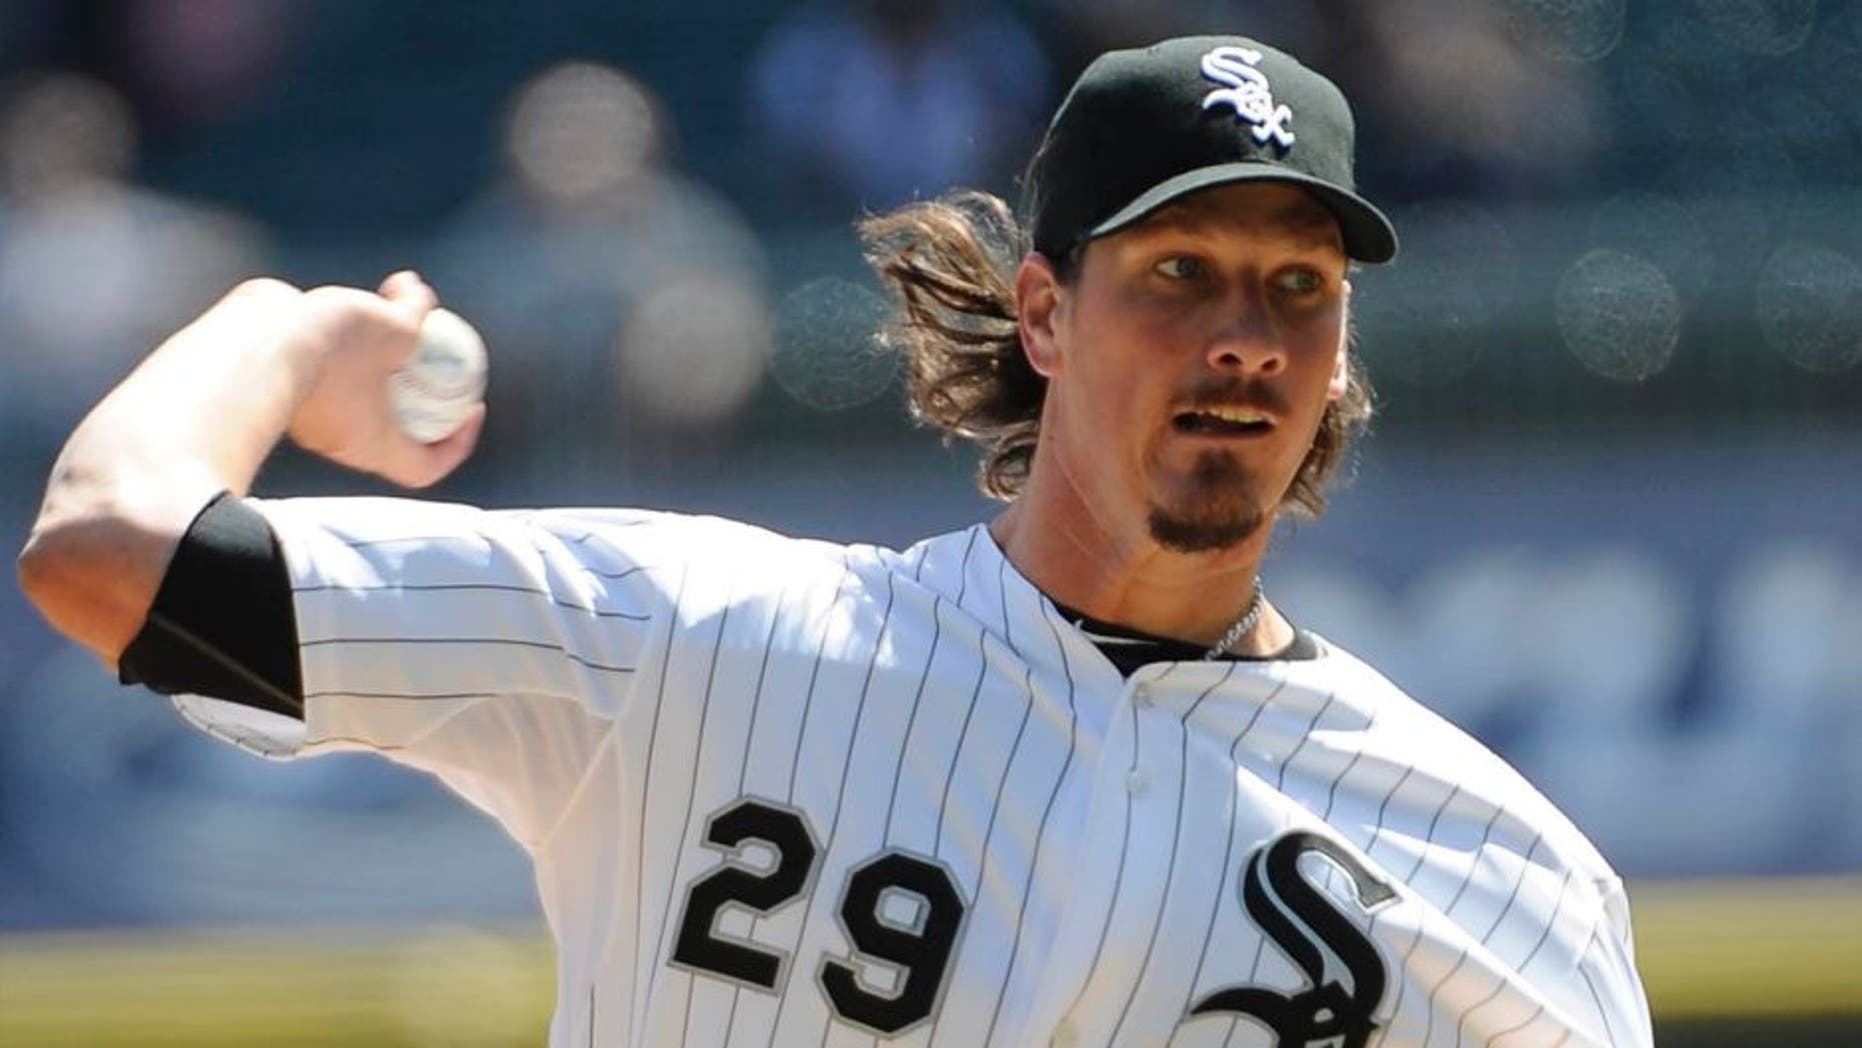 Chicago White Sox starting pitcher Jeff Samardzija throws against the Minnesota Twins during the first inning of a baseball game, Saturday, April 11, 2015 in Chicago.